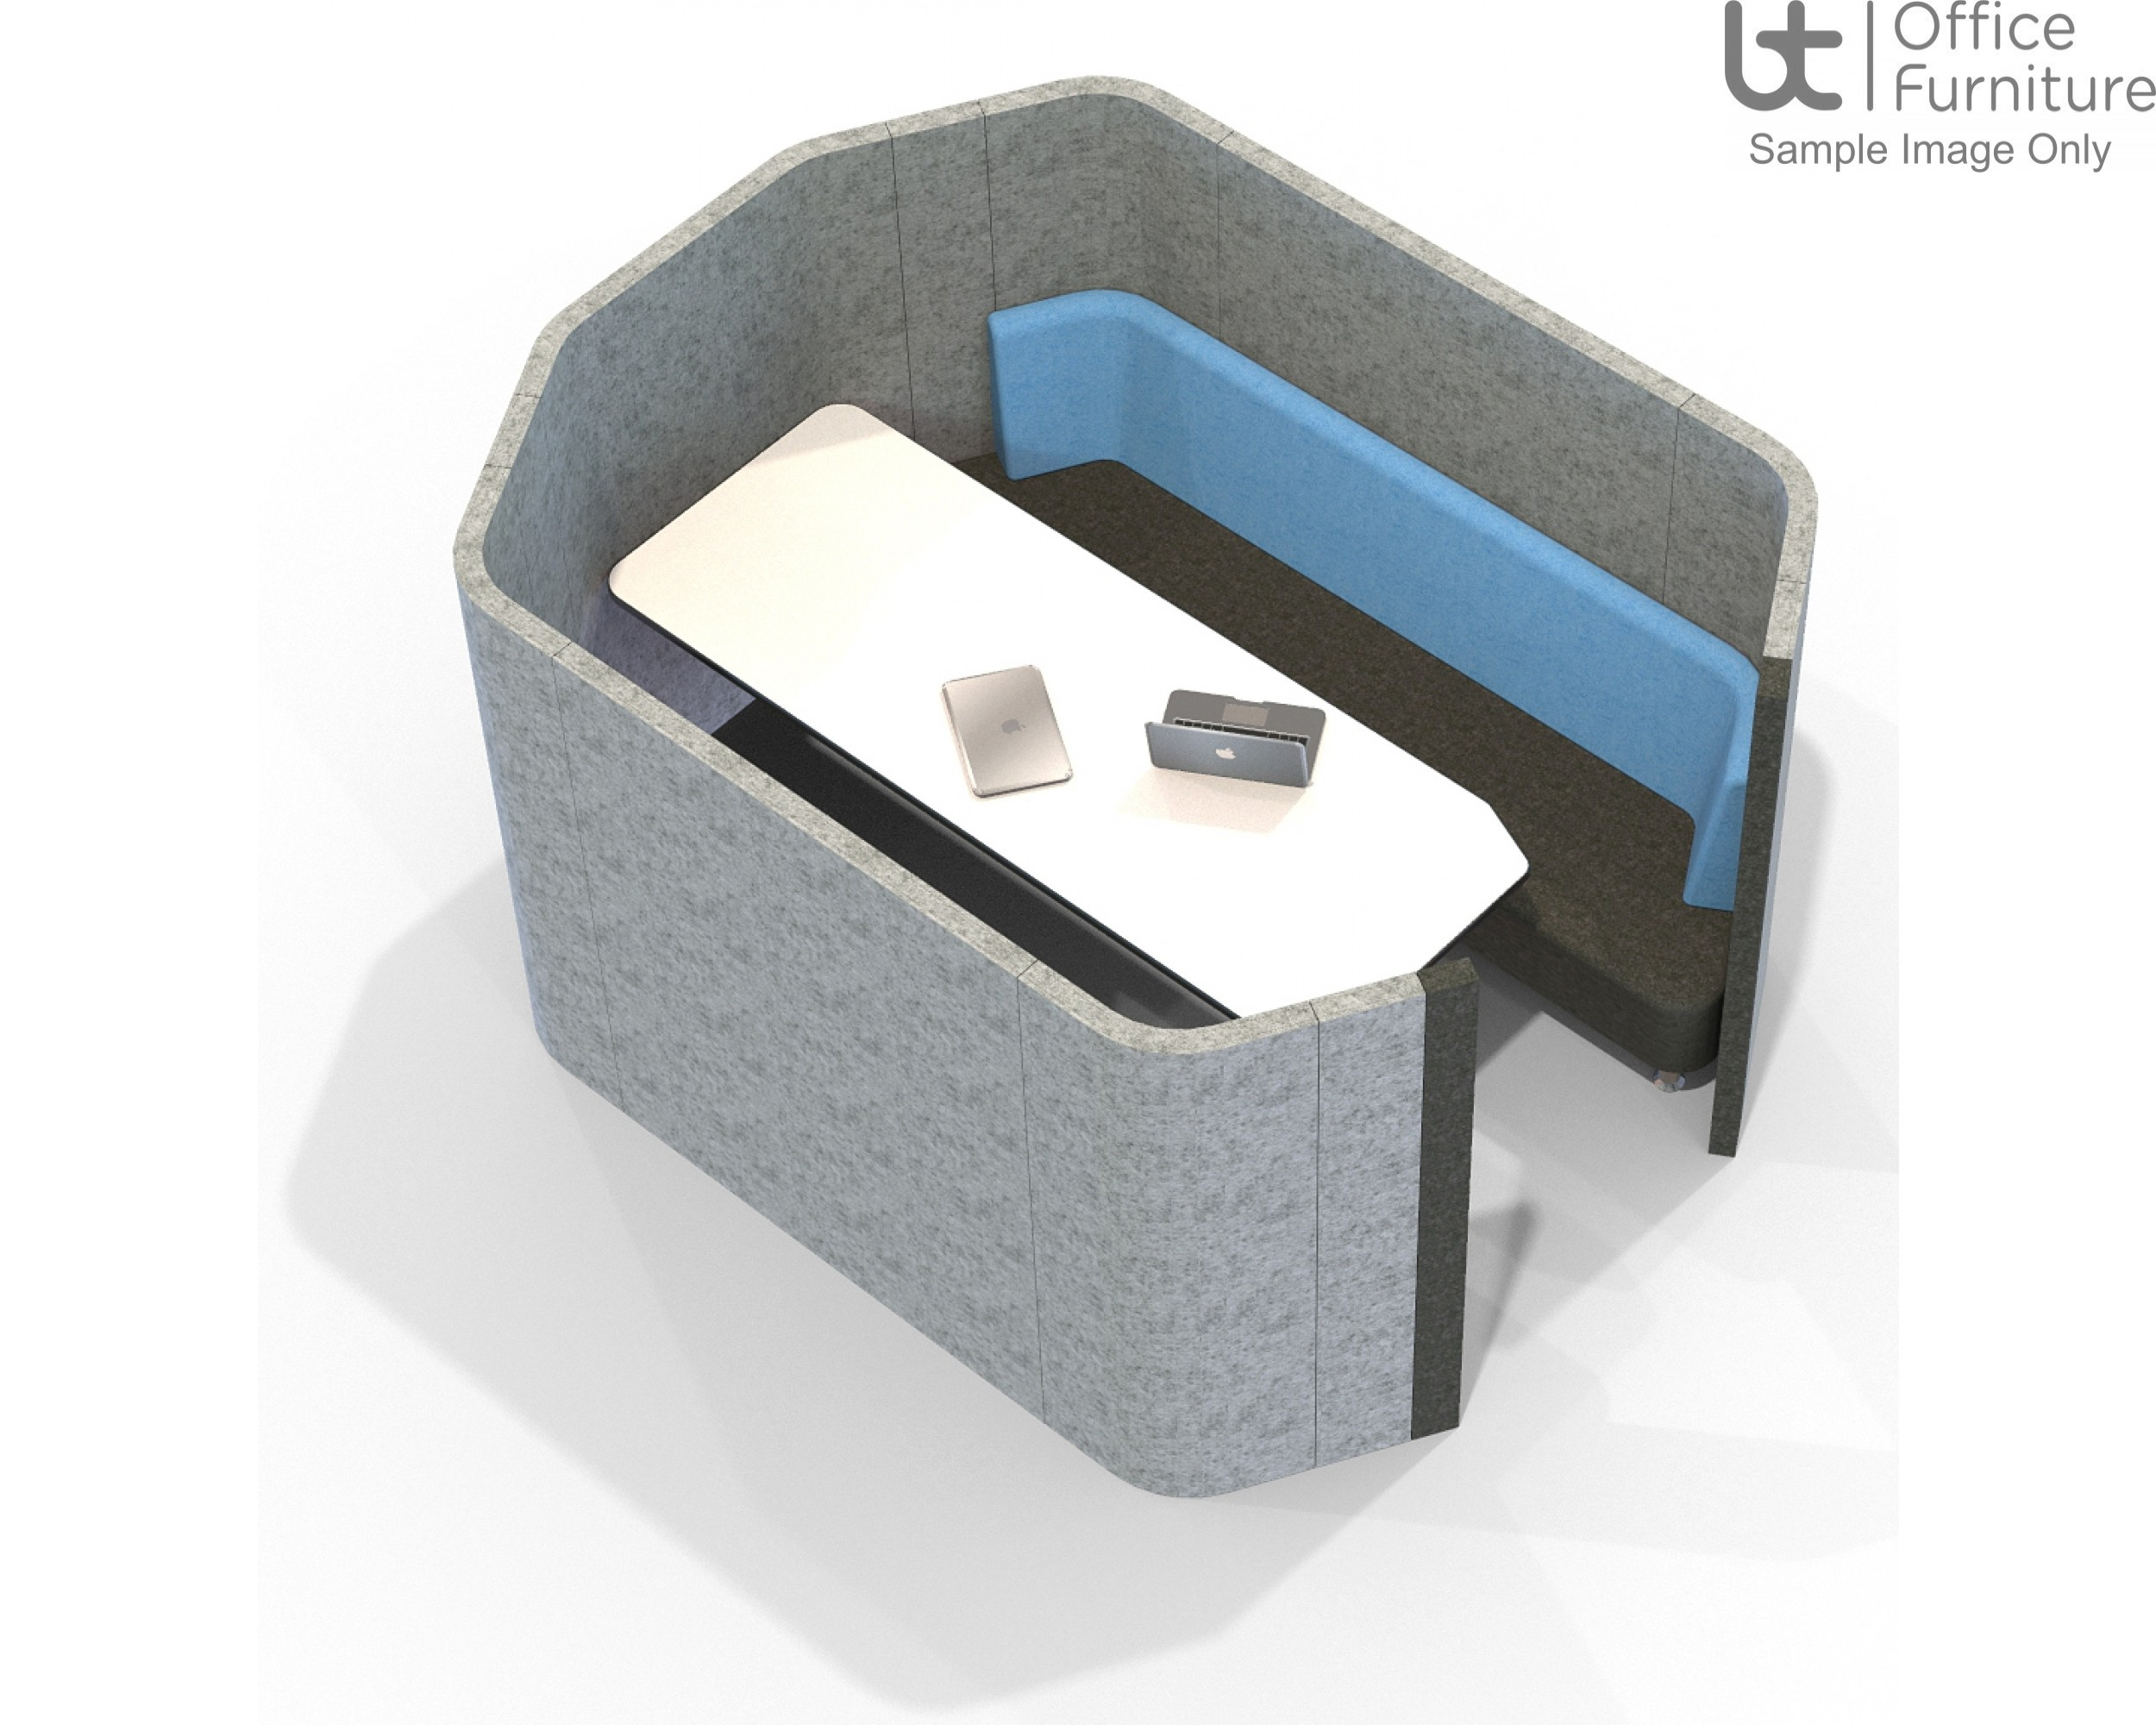 Acoustic Social - 6 Person Octagonal Pod/Booth Including Table (3 Height Options)